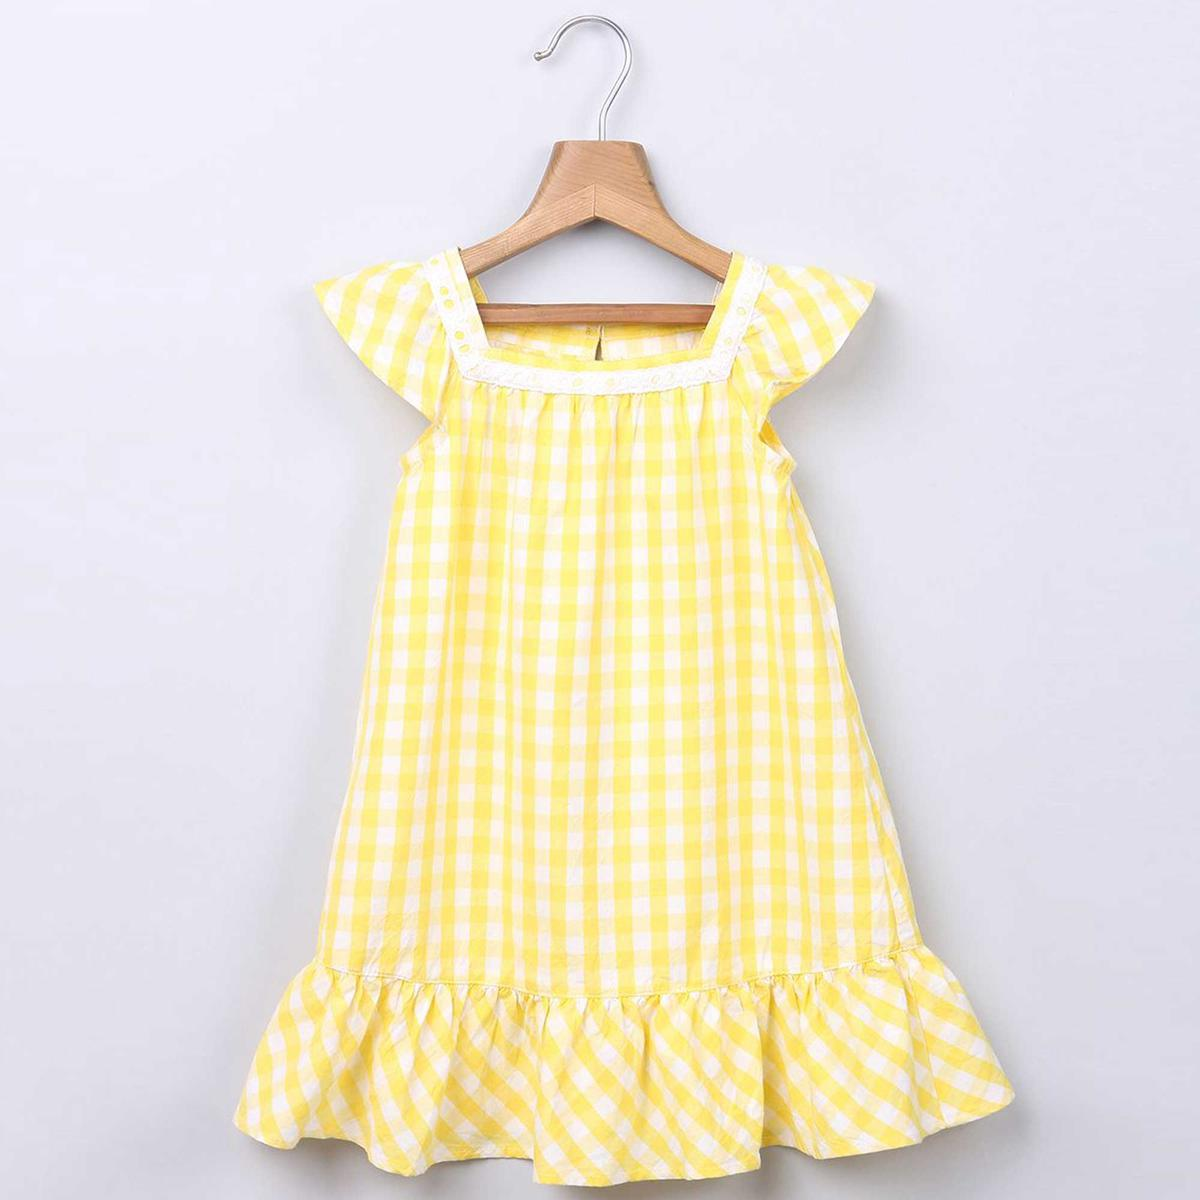 Beebay Yellow Gingham Dress with Lace Insert For Kids